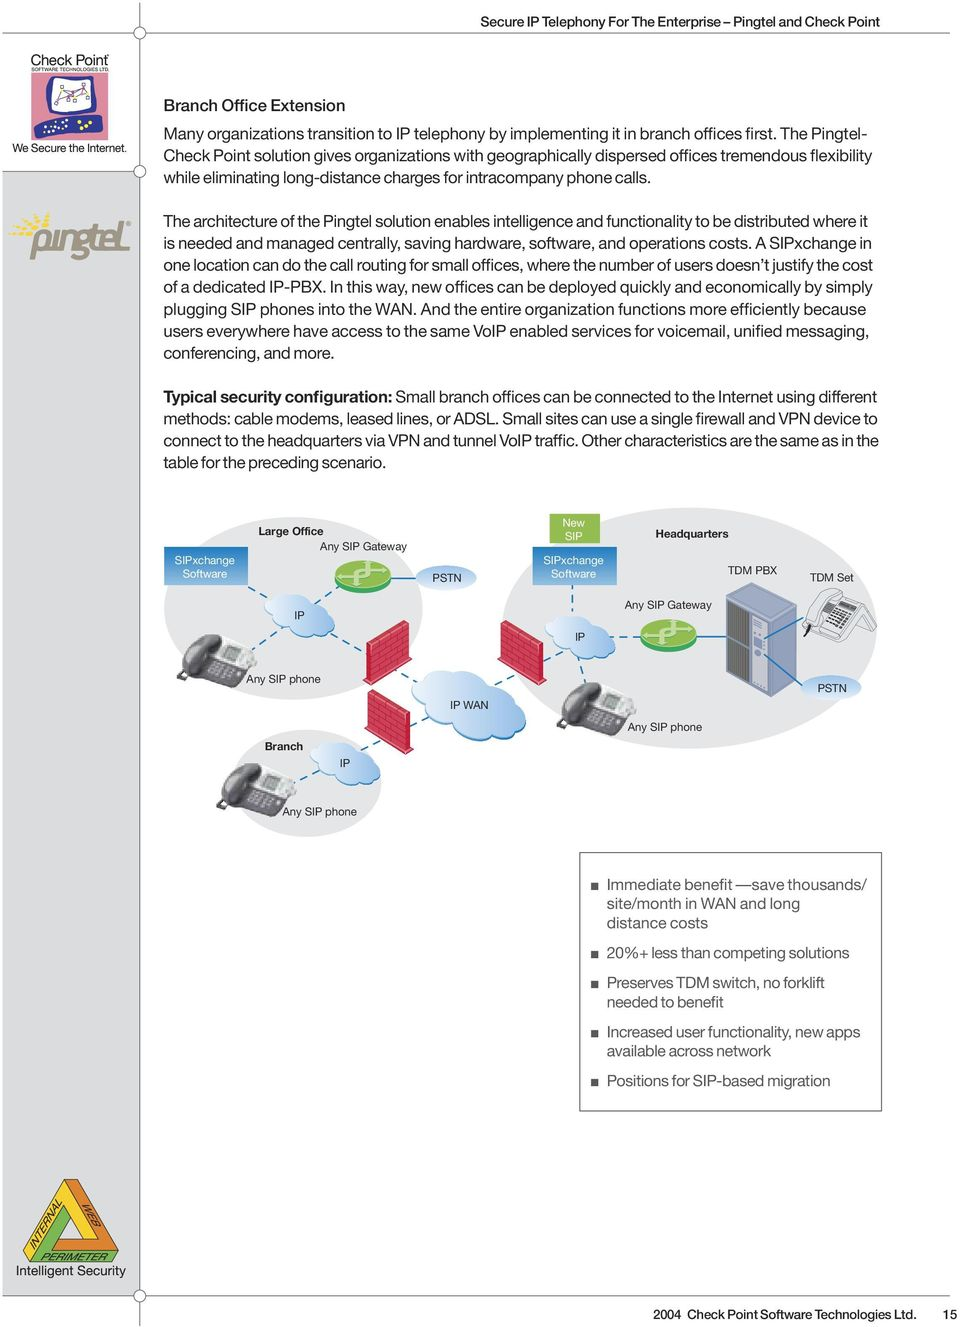 The architecture of the Pingtel solution enables intelligence and functionality to be distributed where it is needed and managed centrally, saving hardware, software, and operations costs.